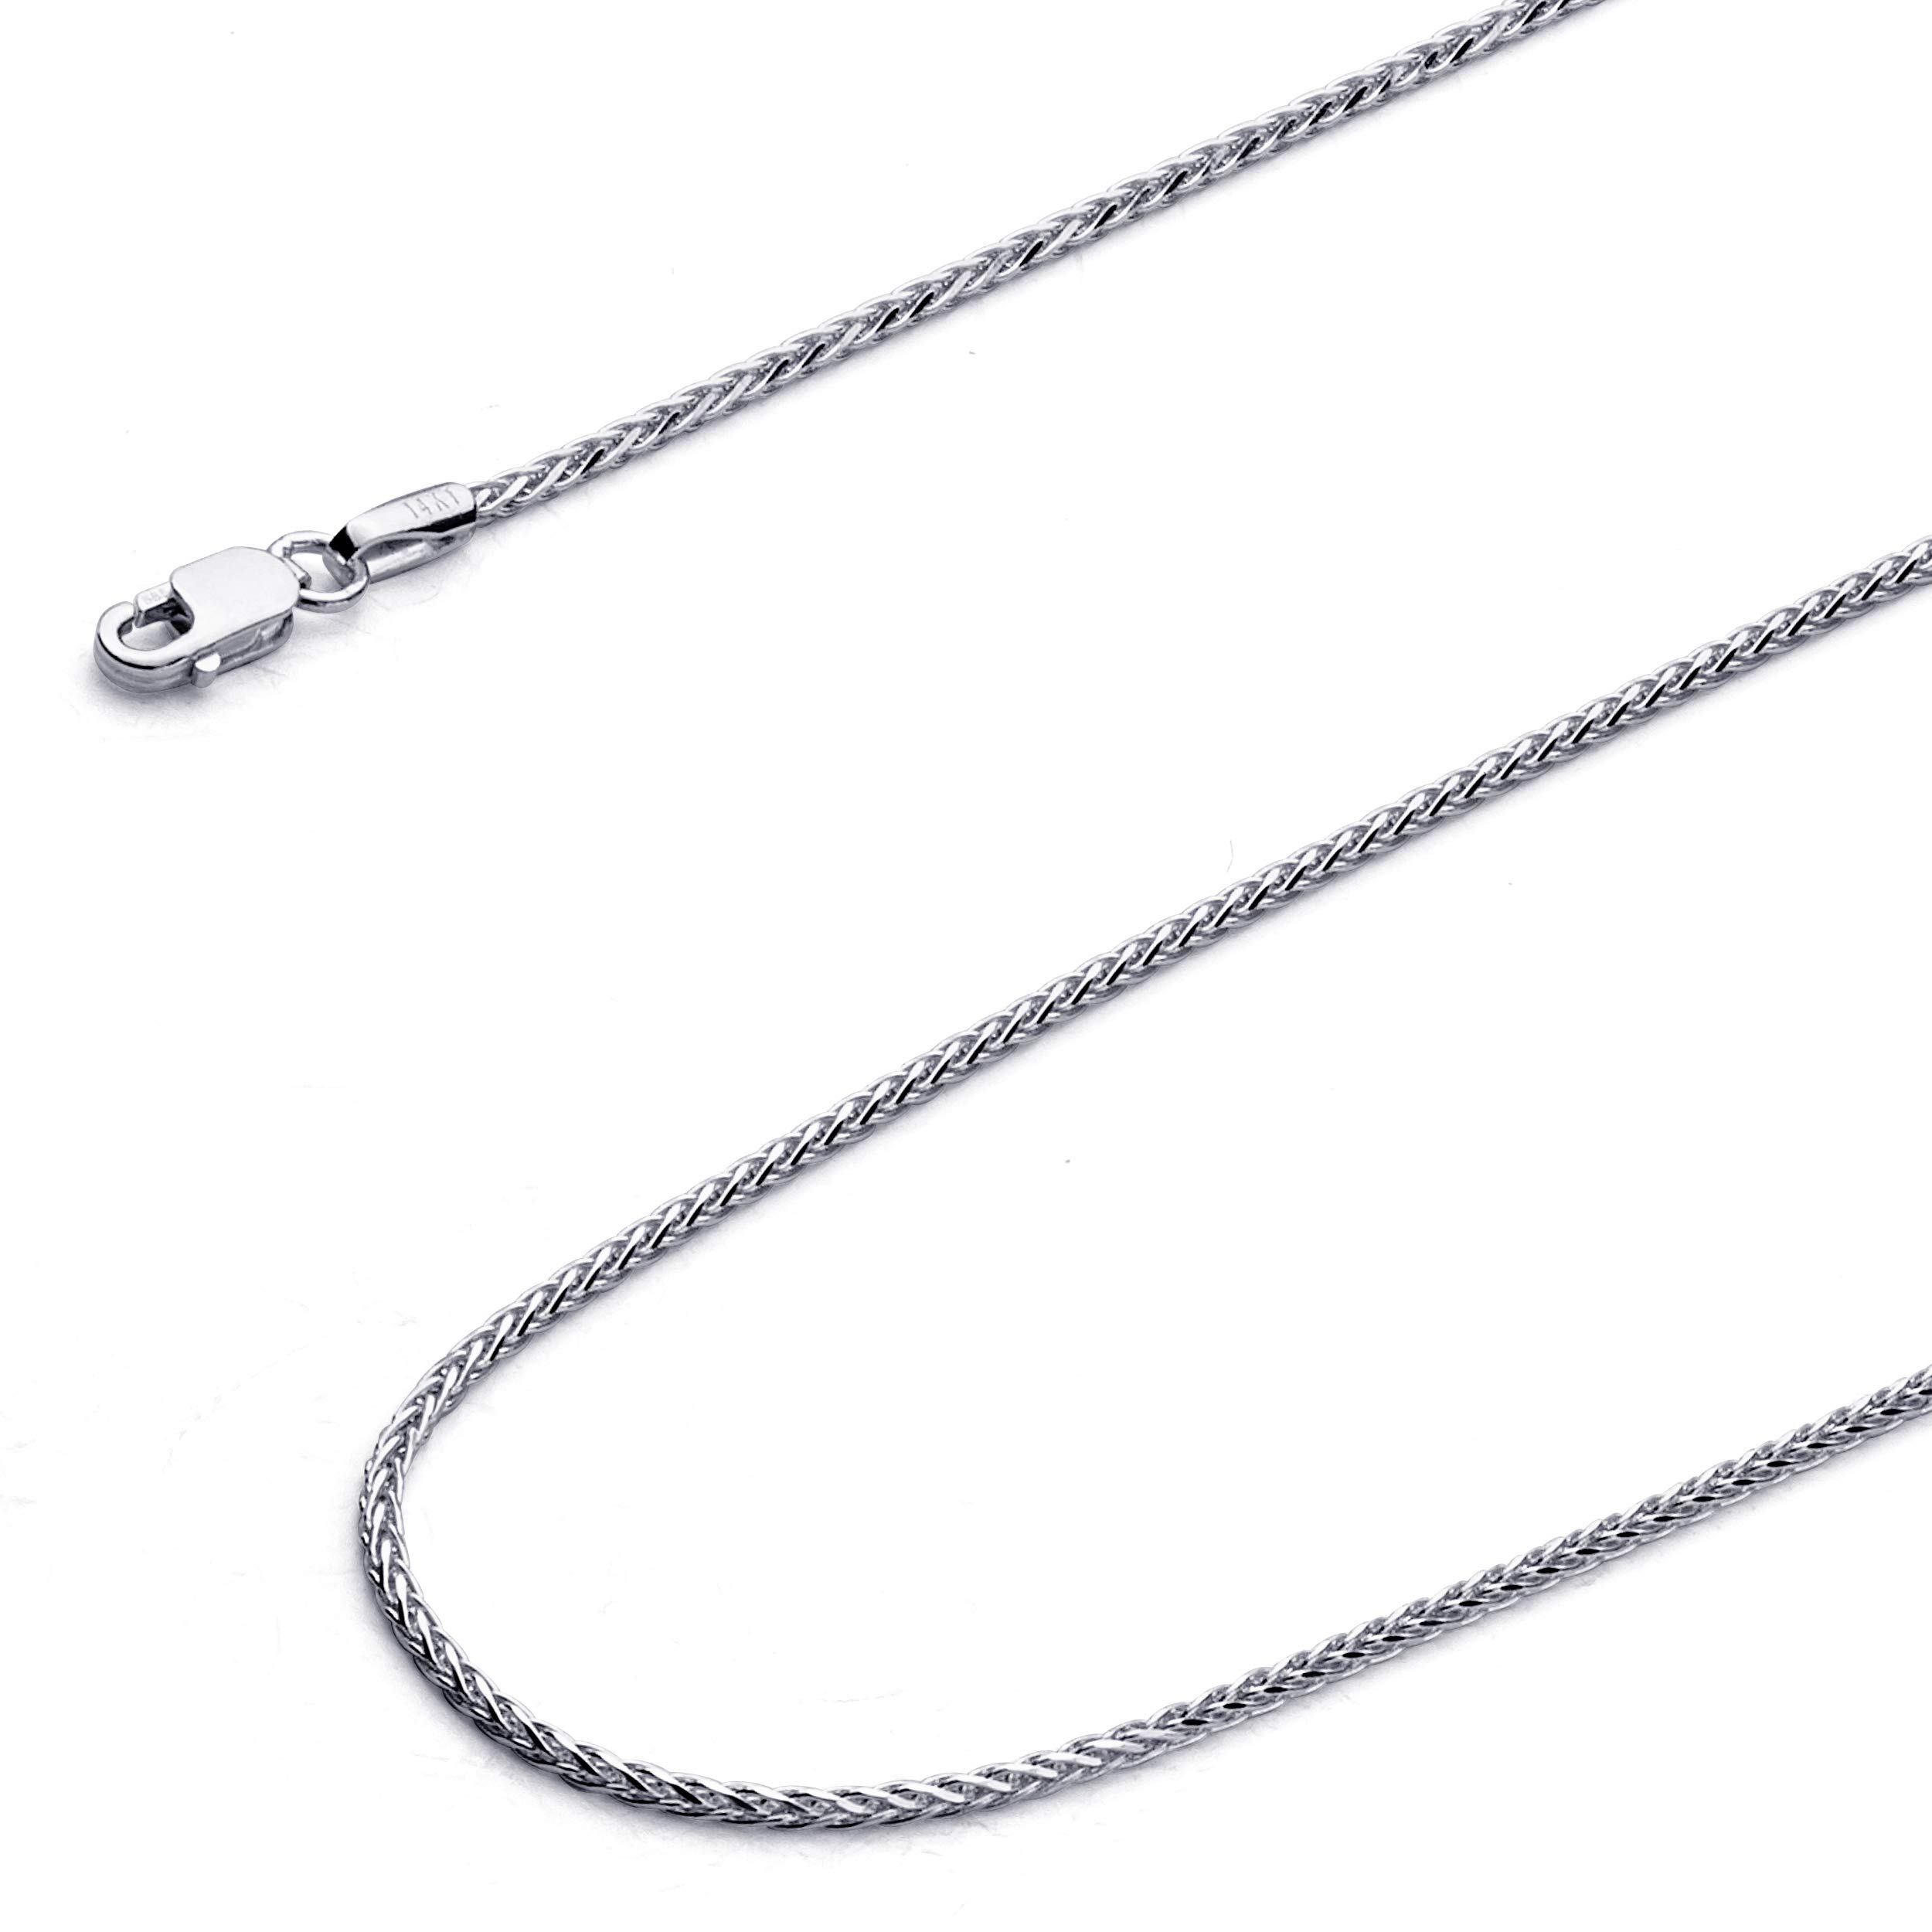 Wellingsale 14k White Gold 1mm Diamond Cut Round Wheat Chain Necklace with Lobster Claw Clasp - 16''